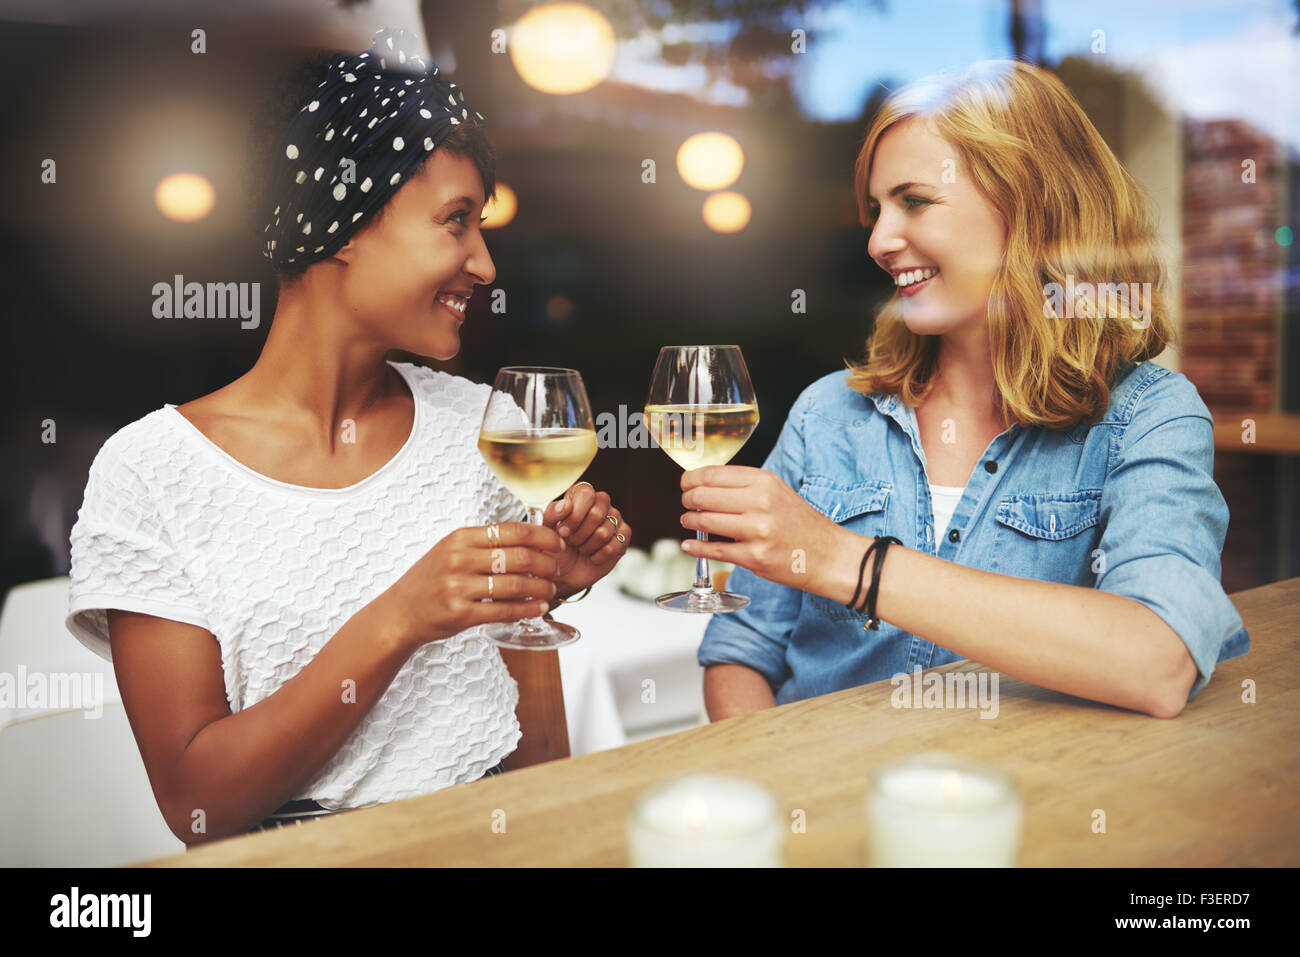 Pretty young women toasting each other with glasses of white wine as they meet up in a pub for a relaxing chat - Stock Image